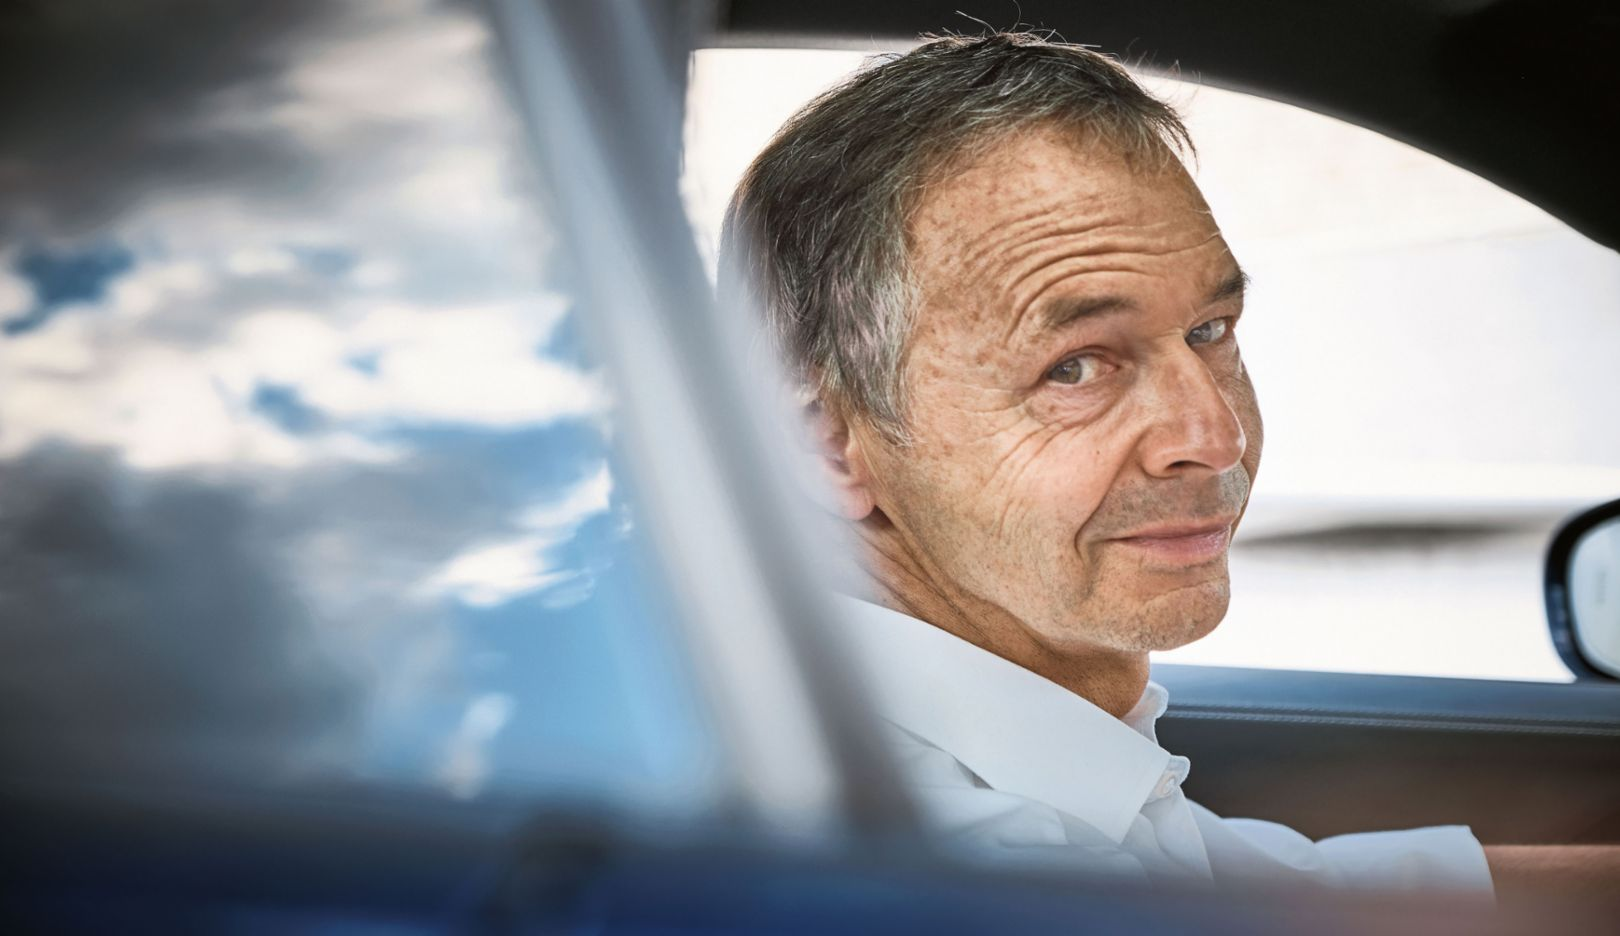 August Achleitner, Vice President Product Line 911 and 718, 2018, Porsche AG